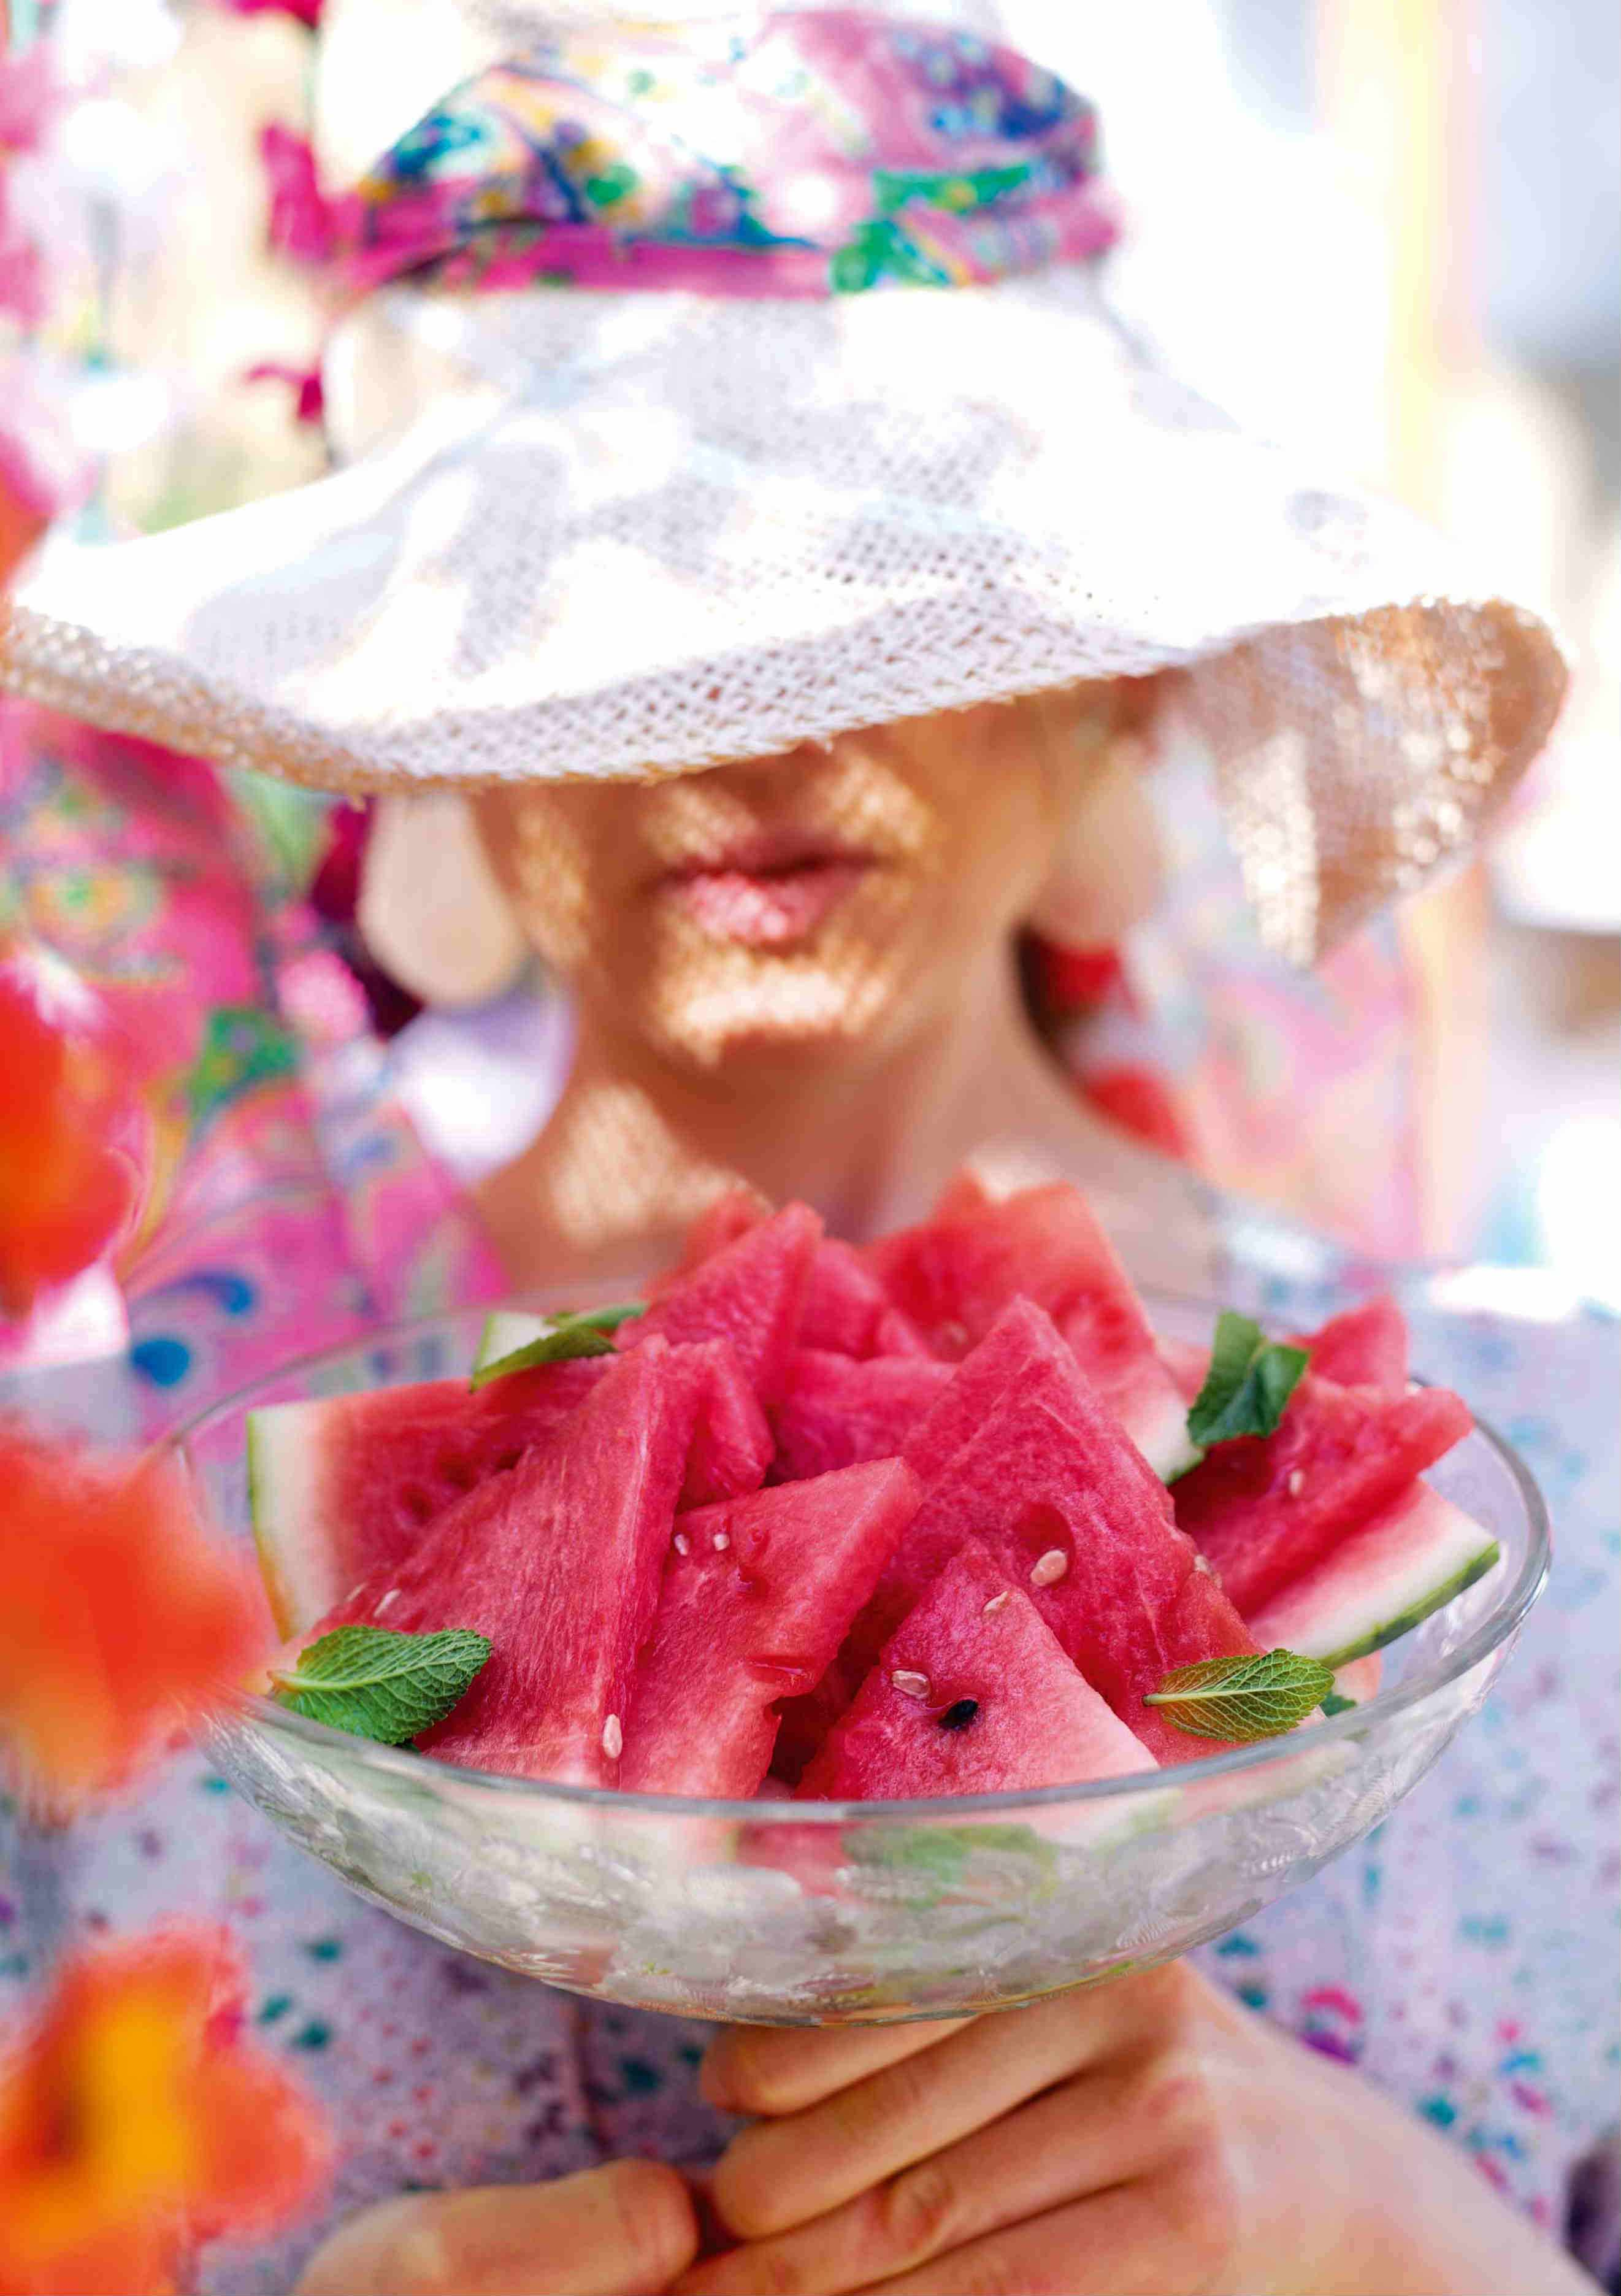 Iced watermelon with mint and lime syrup